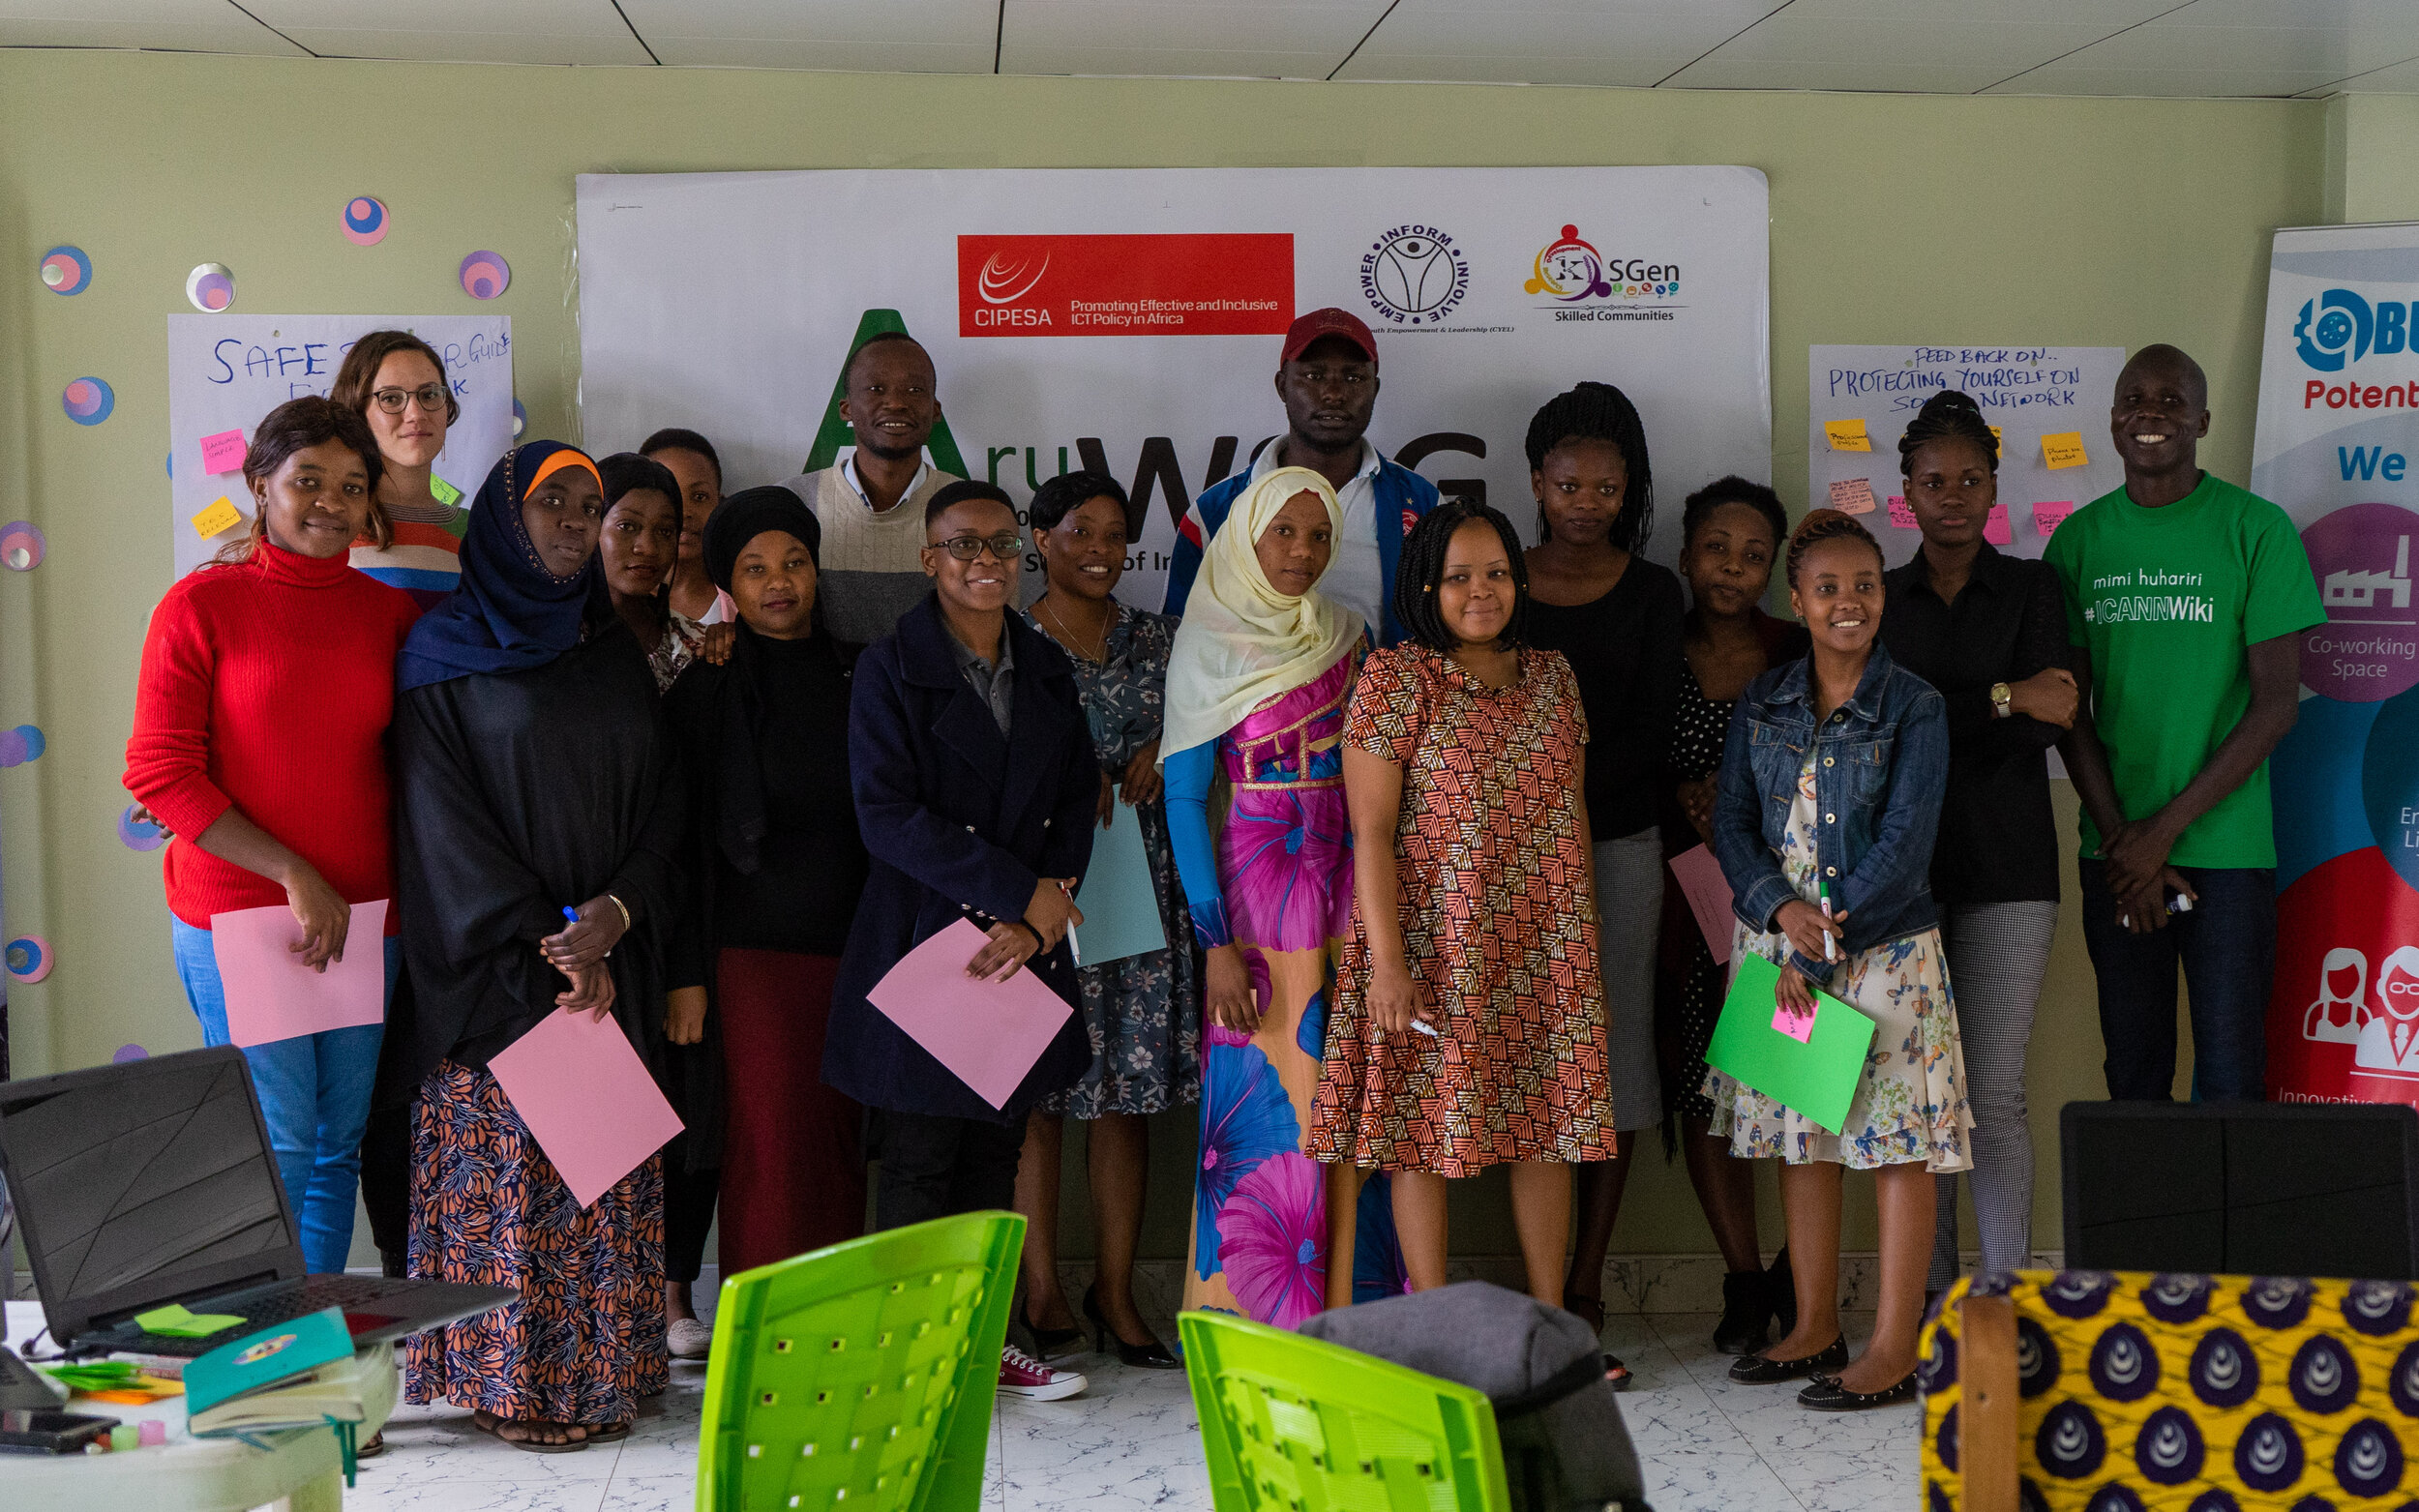 Localization Sprint participants at the 2nd Edition of the Arusha Women's School of Internet Governance